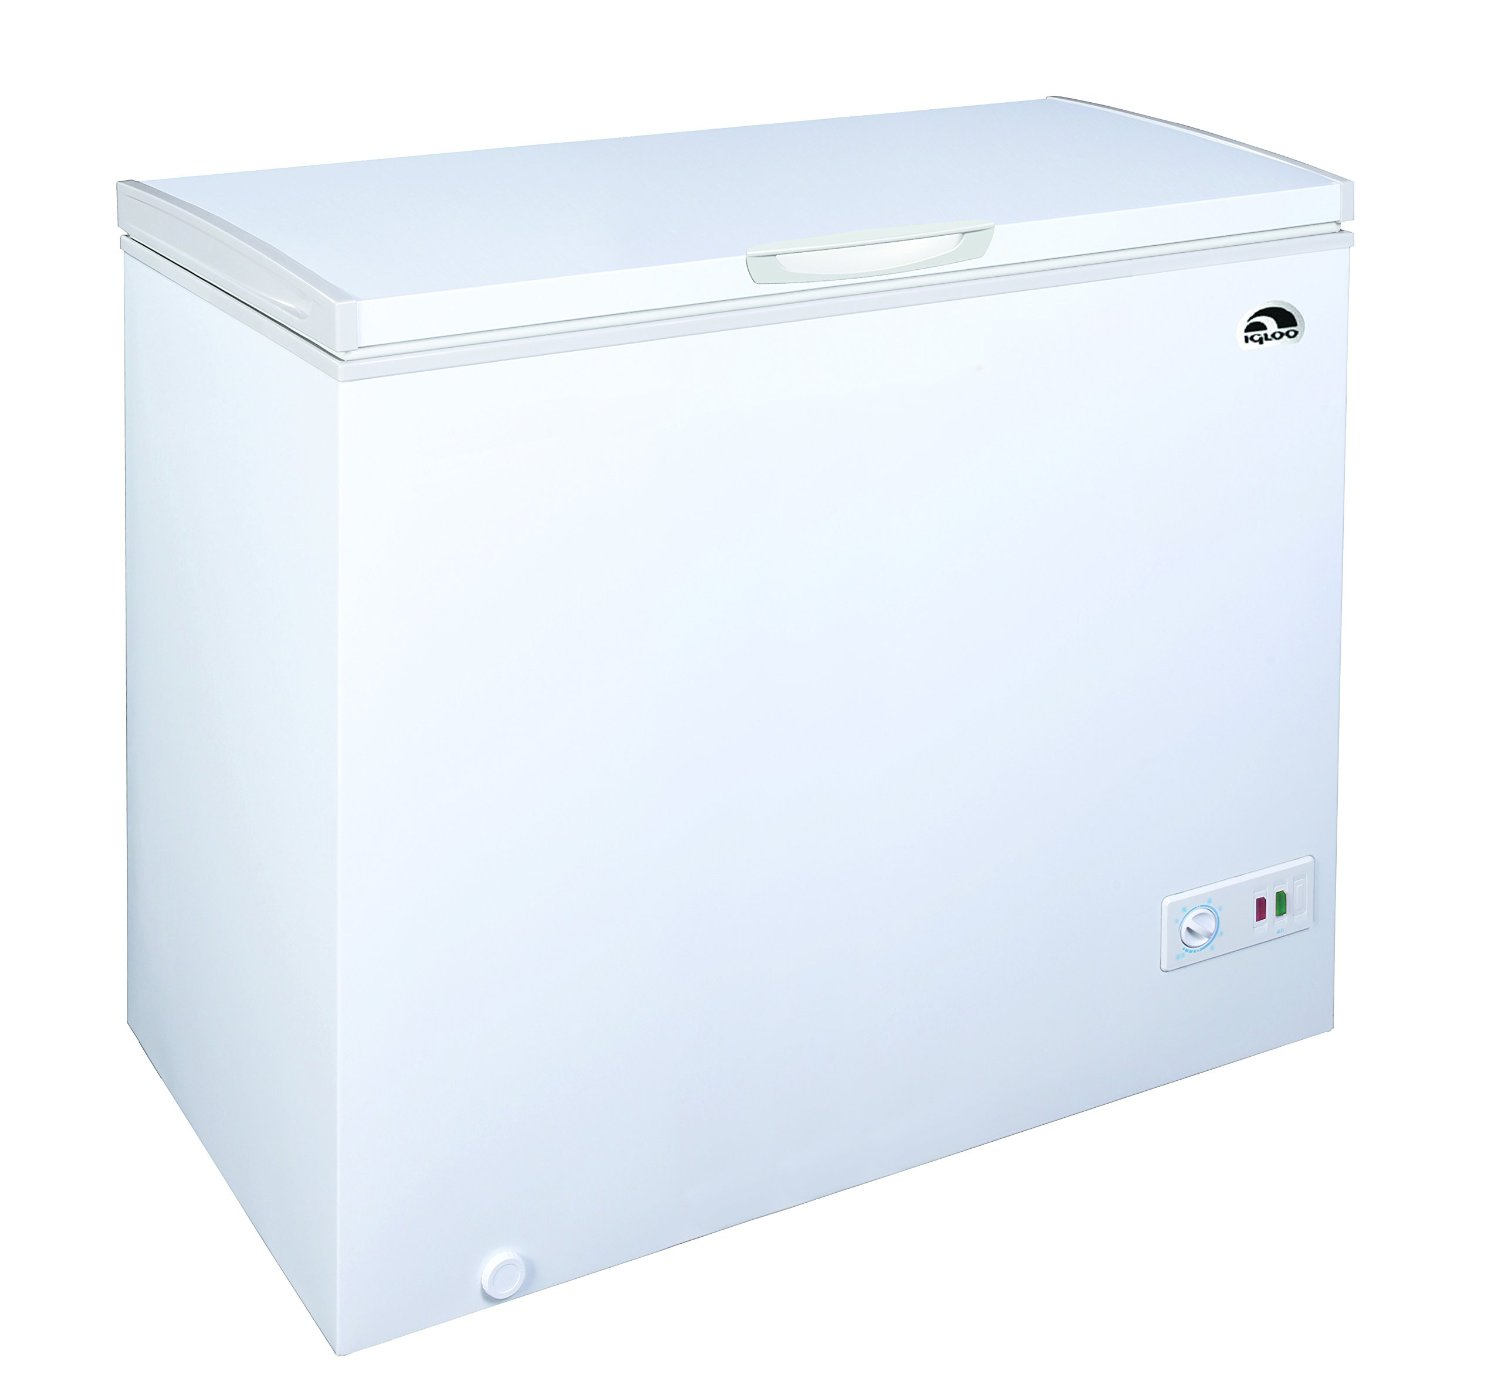 10.6 Cubic Foot Chest Freezer